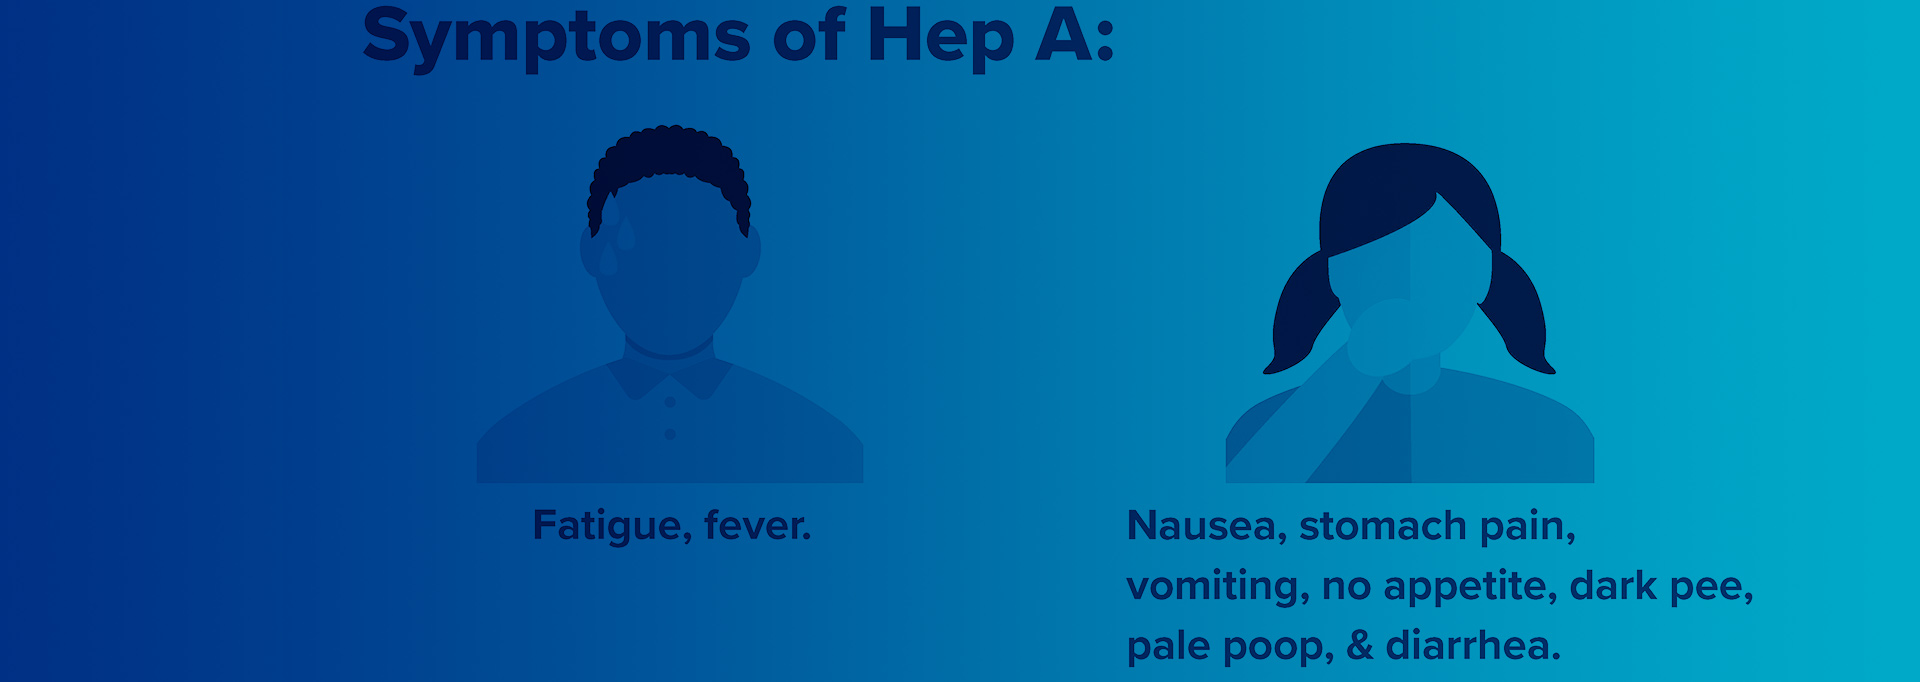 Symptoms of Hep A: Fatigue, fever; Nausea, stomach pain, vomiting, no appetite, dark pee, pale poop, & diarrhea.